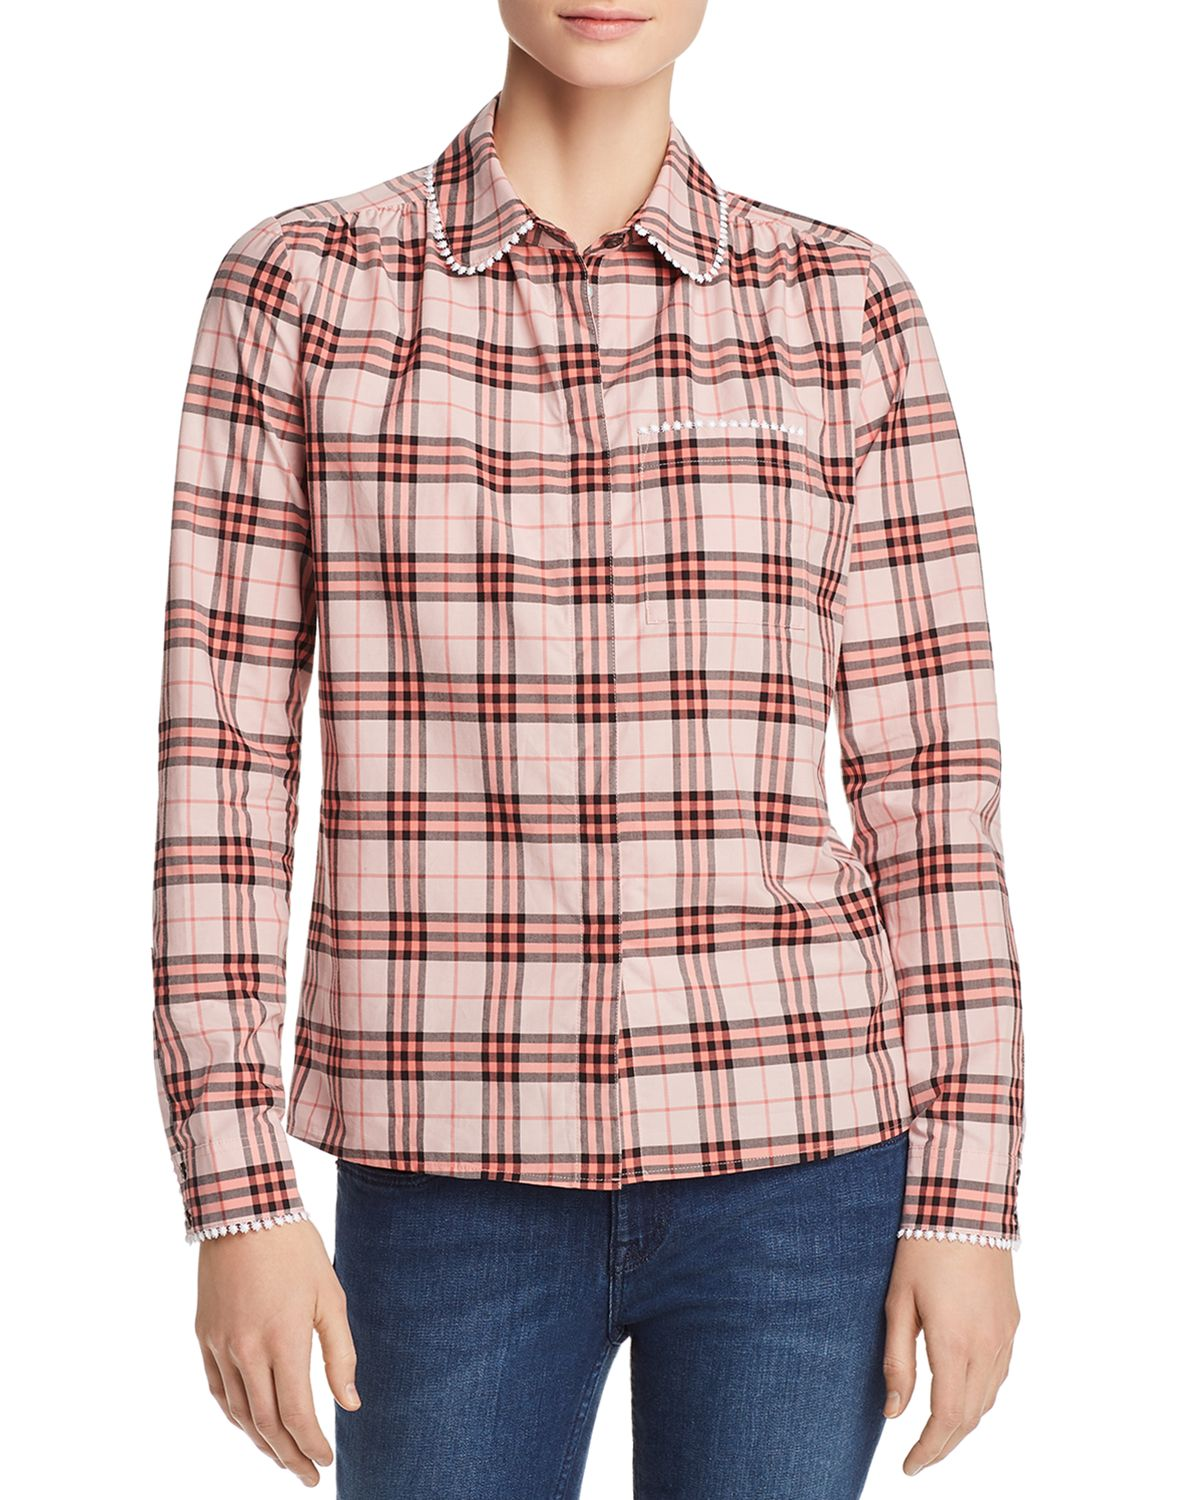 Brambling Embroidered Plaid Top by Burberry